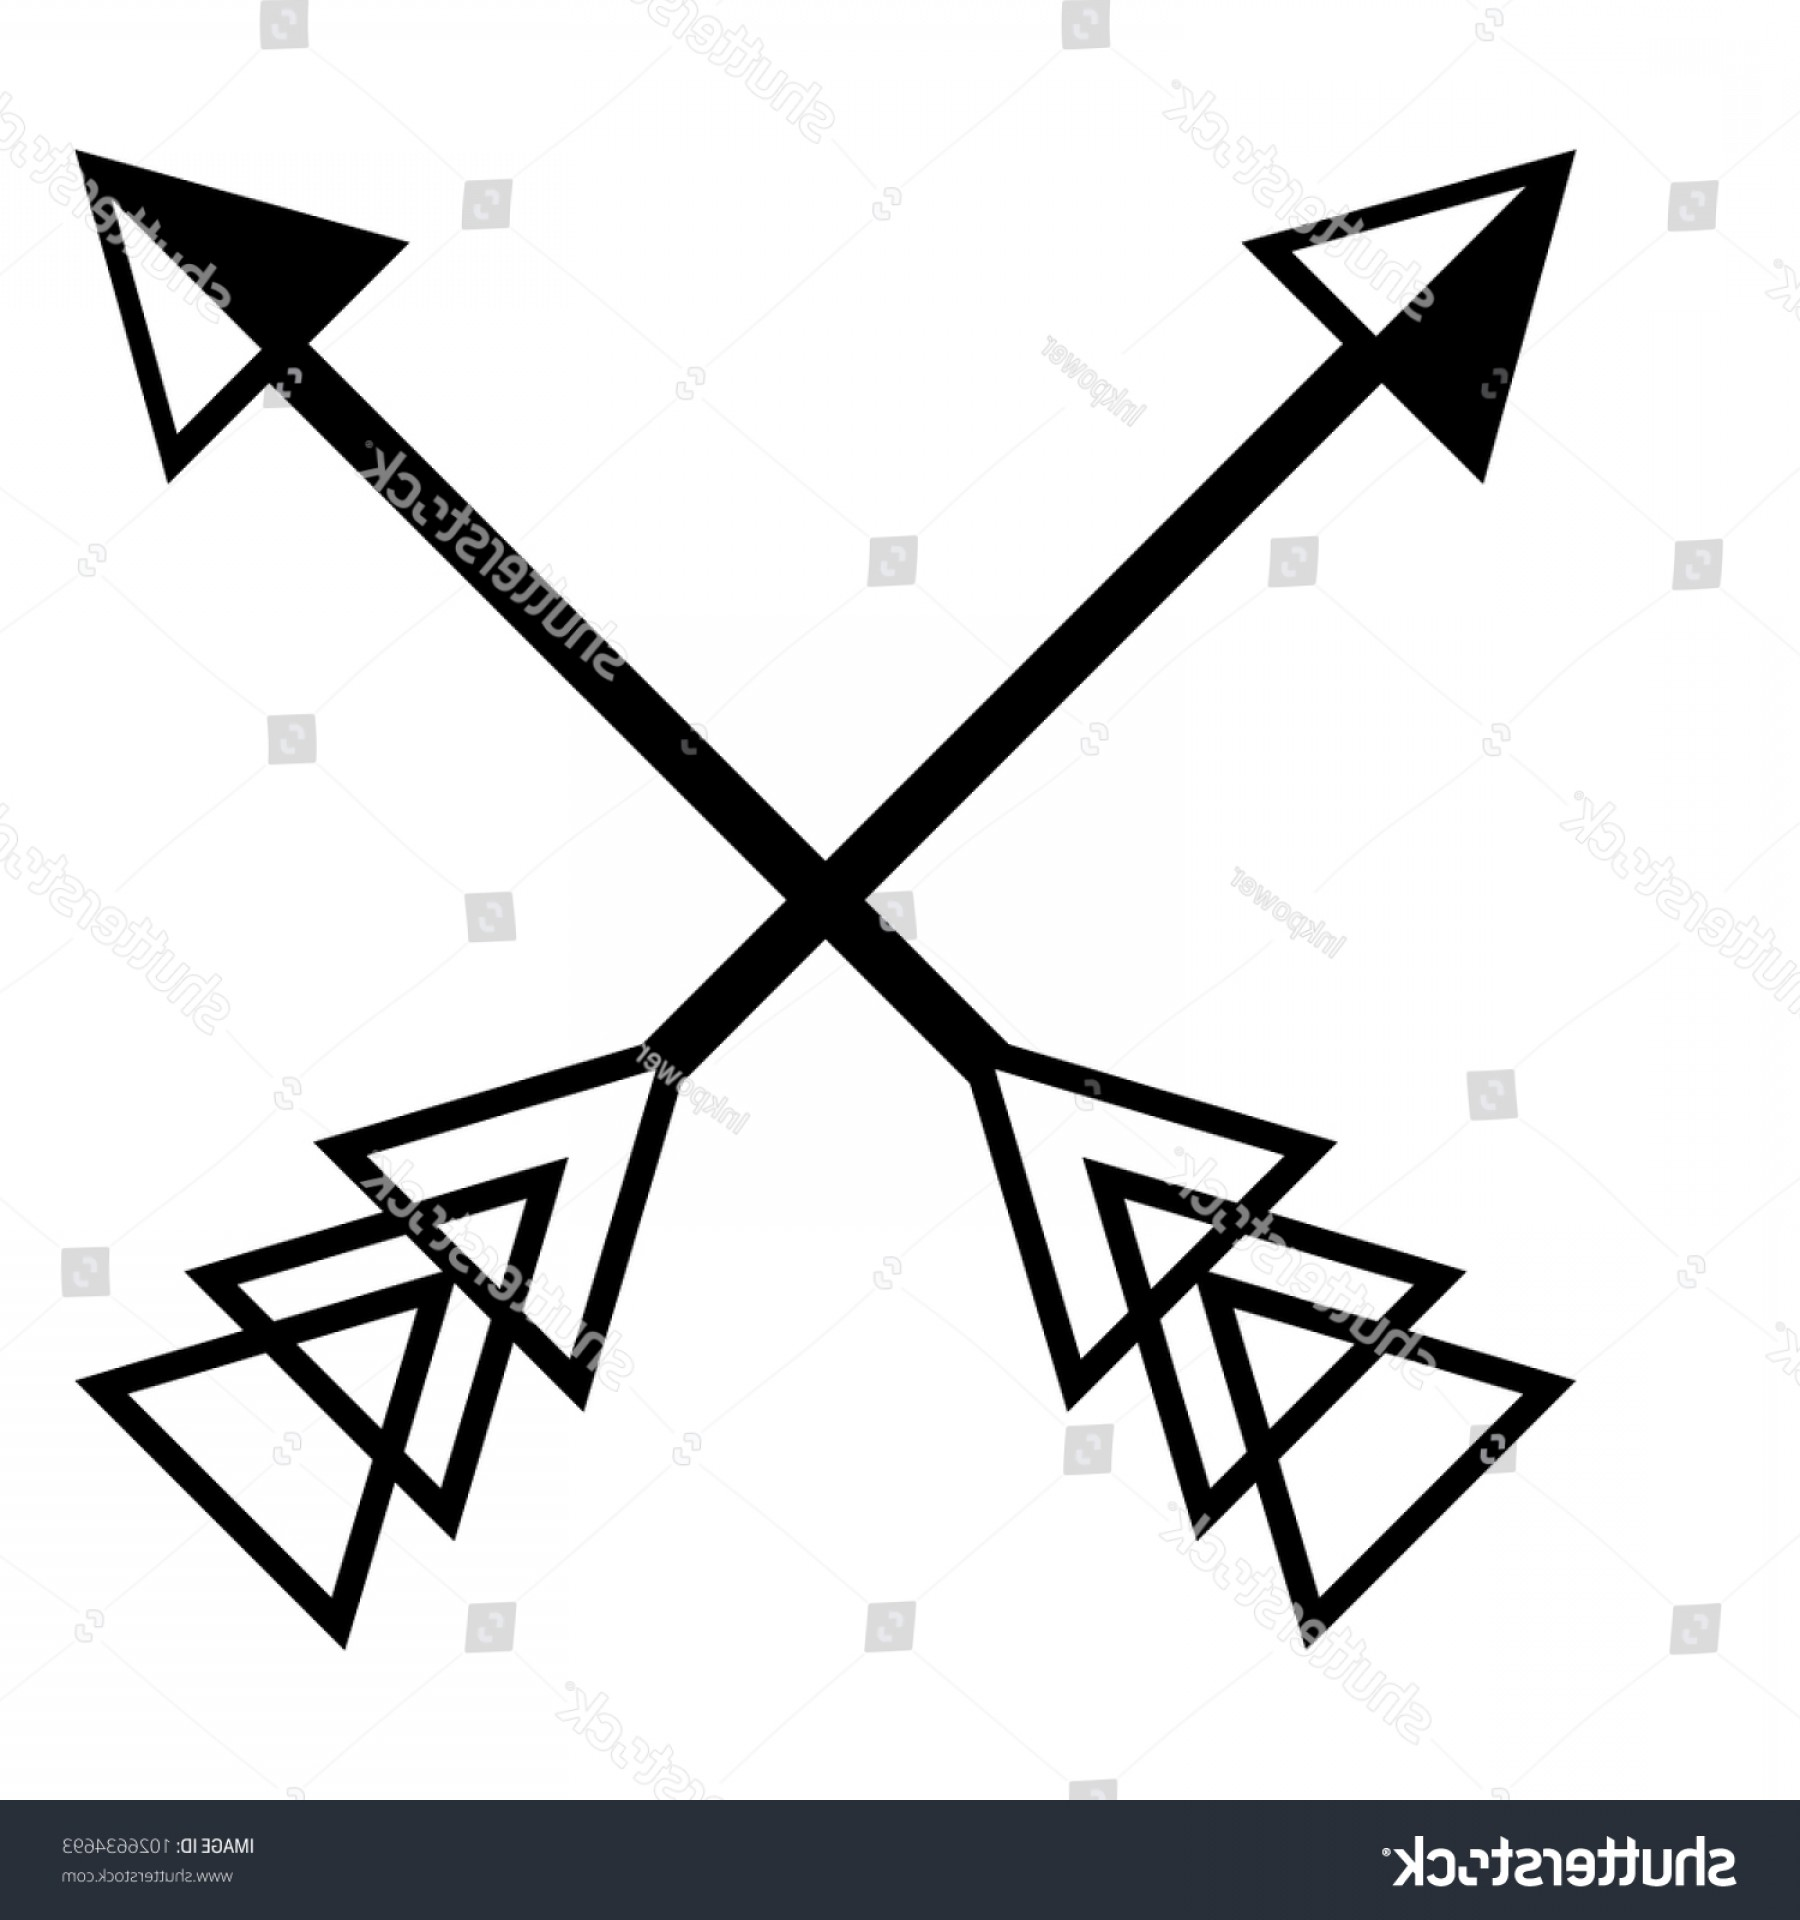 Vector Boho Arrow Strength: Crossing Arrows Graphic Vector Design